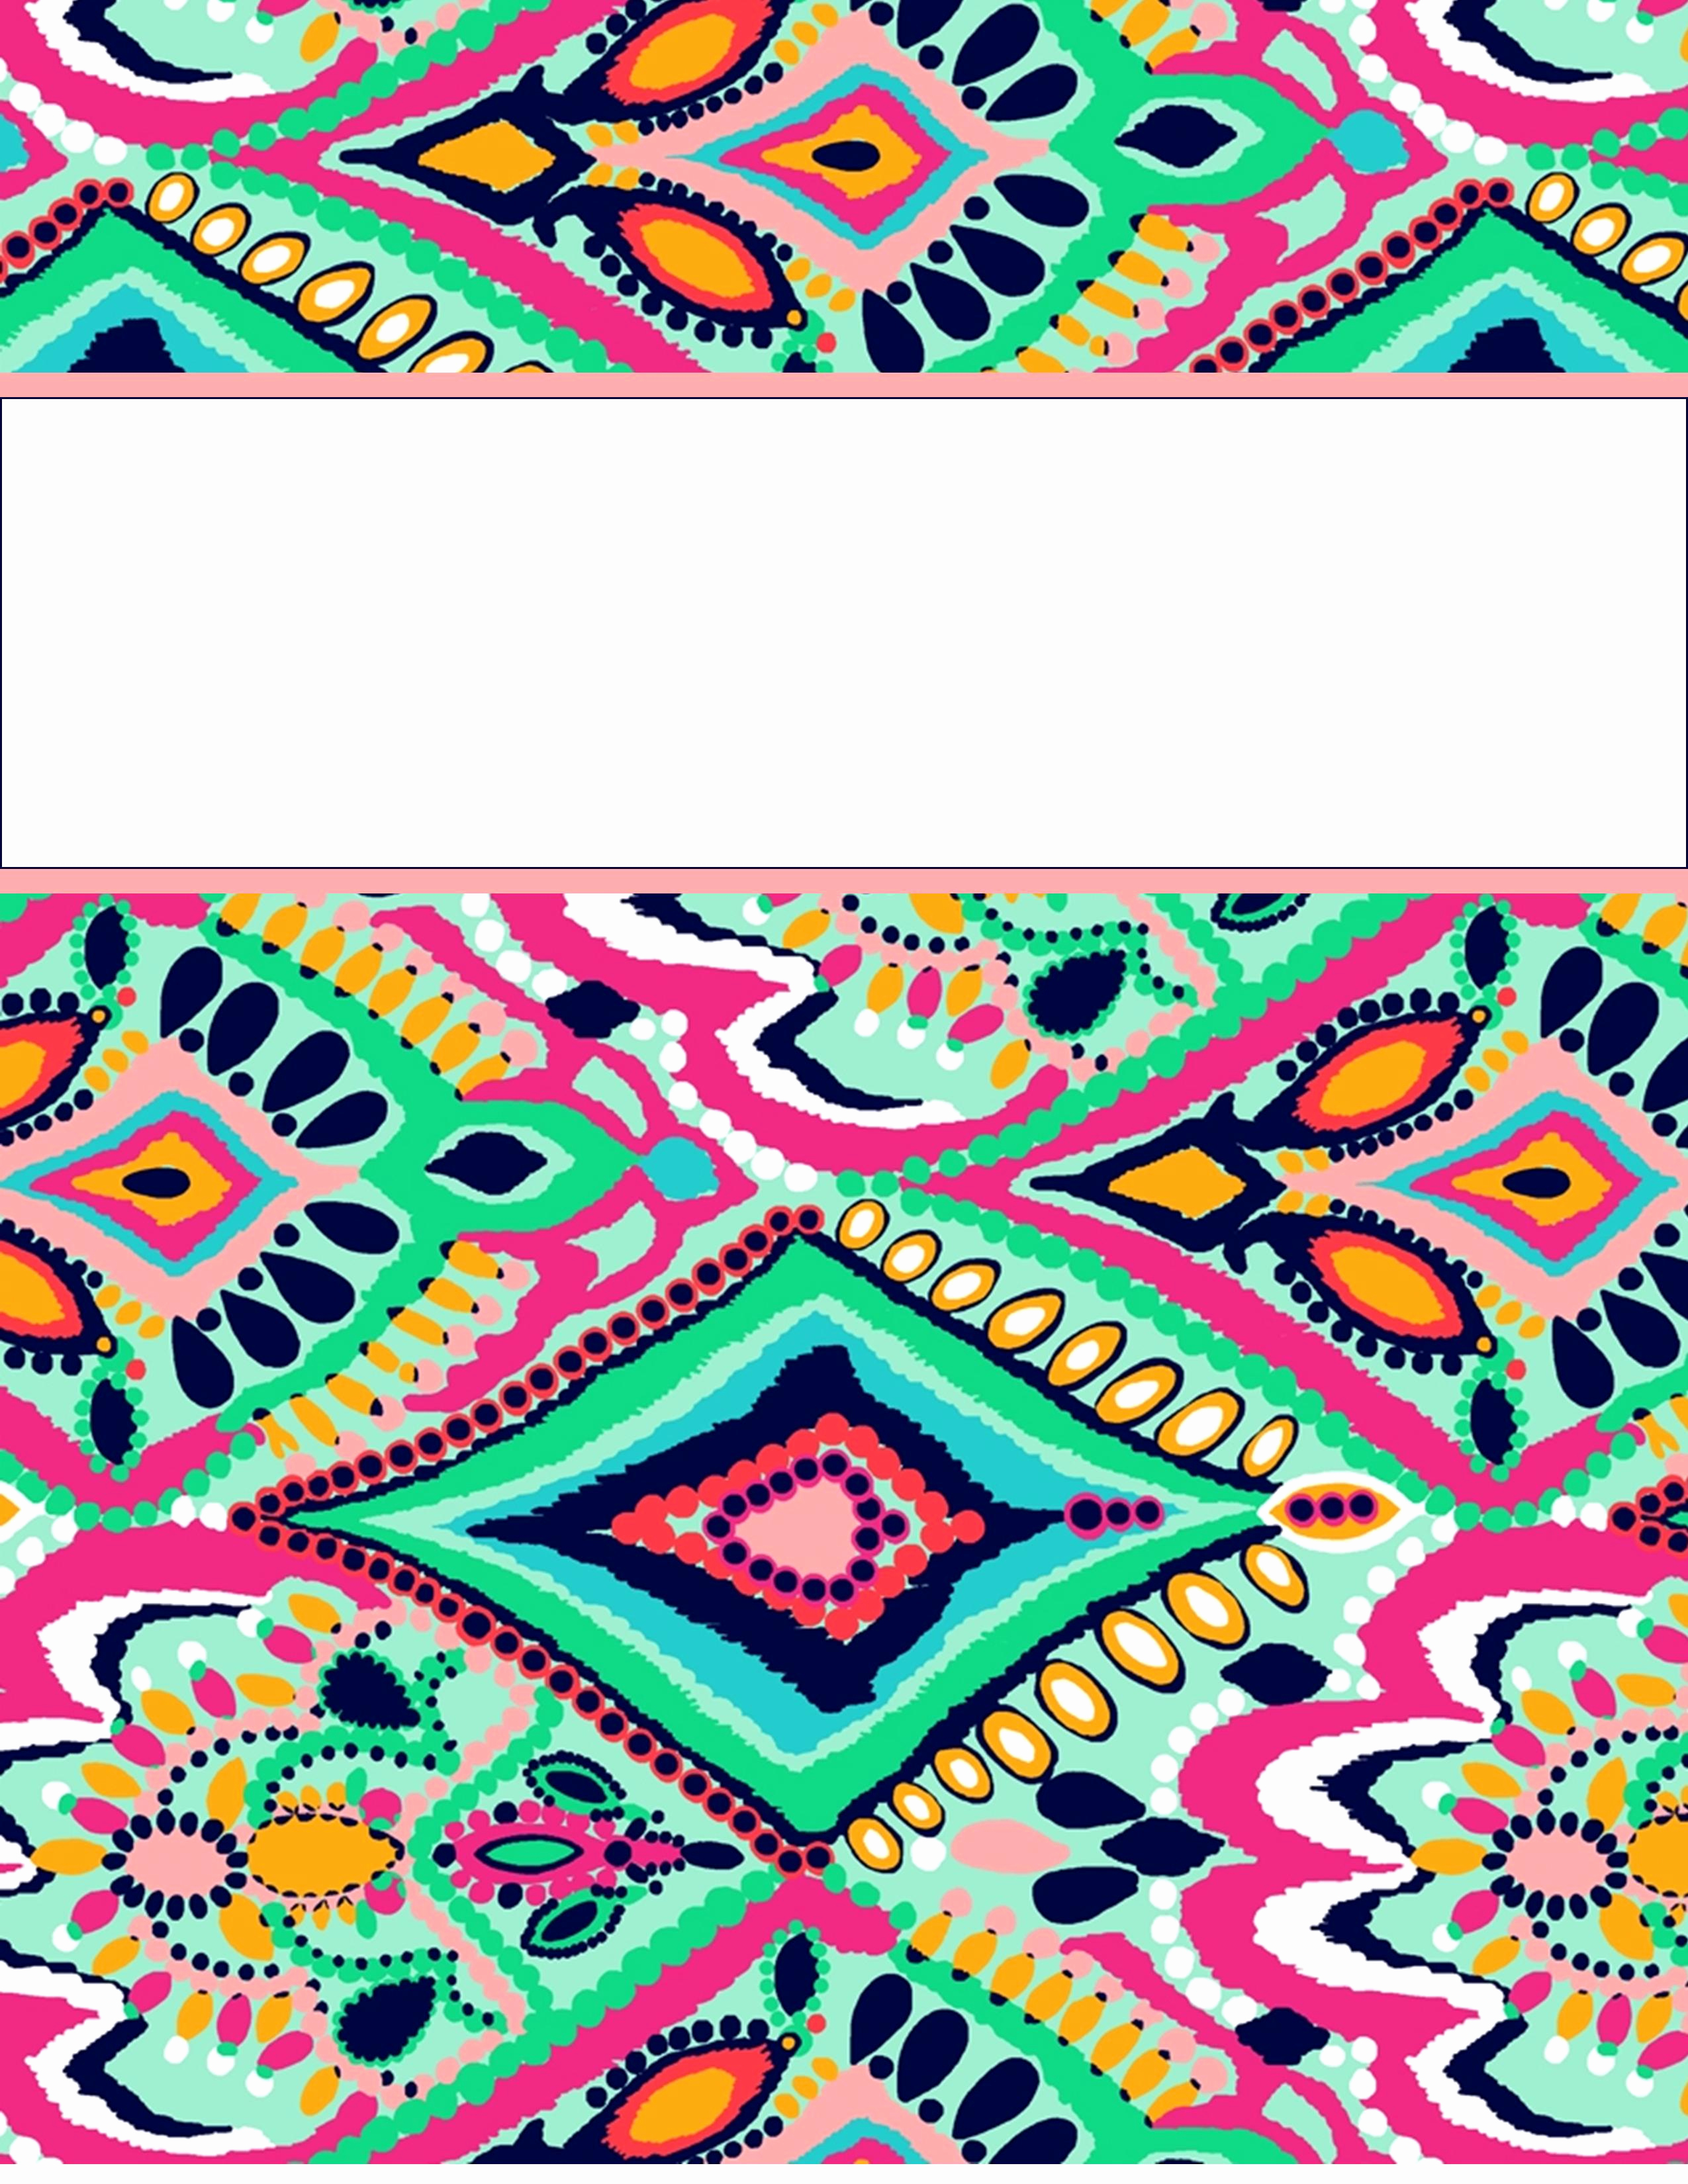 Free Binder Cover Templates Unique My Cute Binder Covers